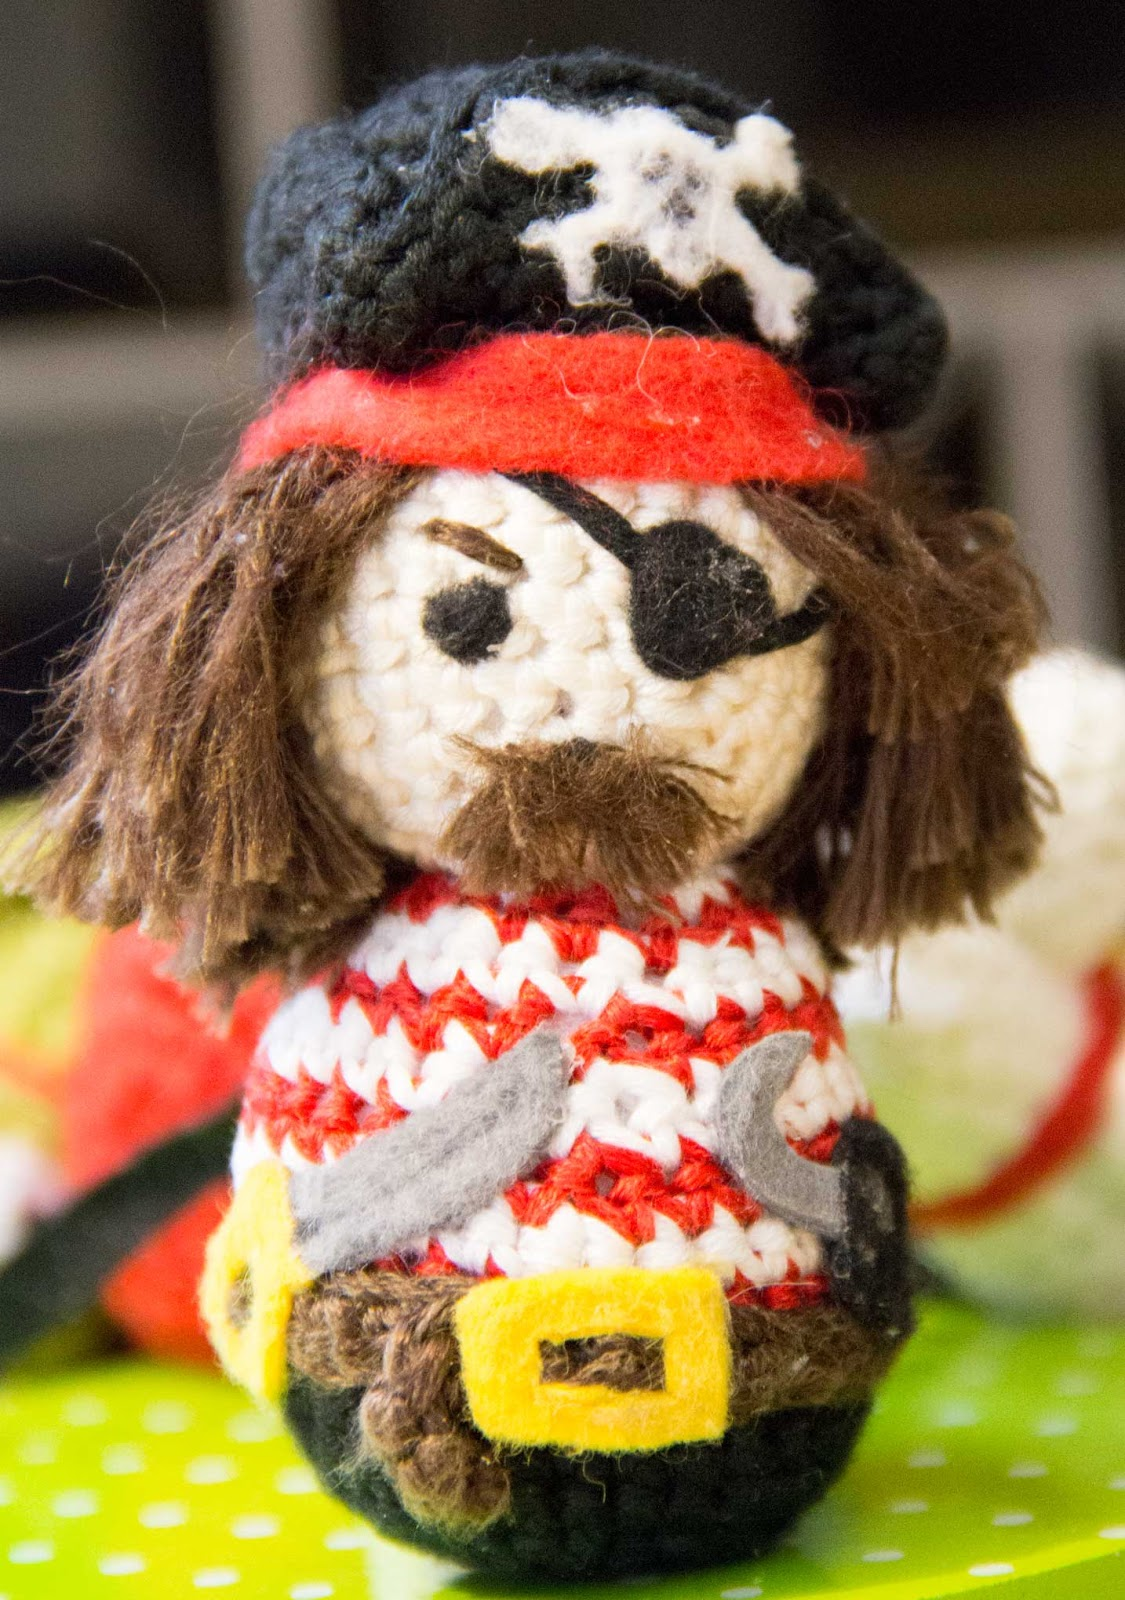 croched pirate amigurumi